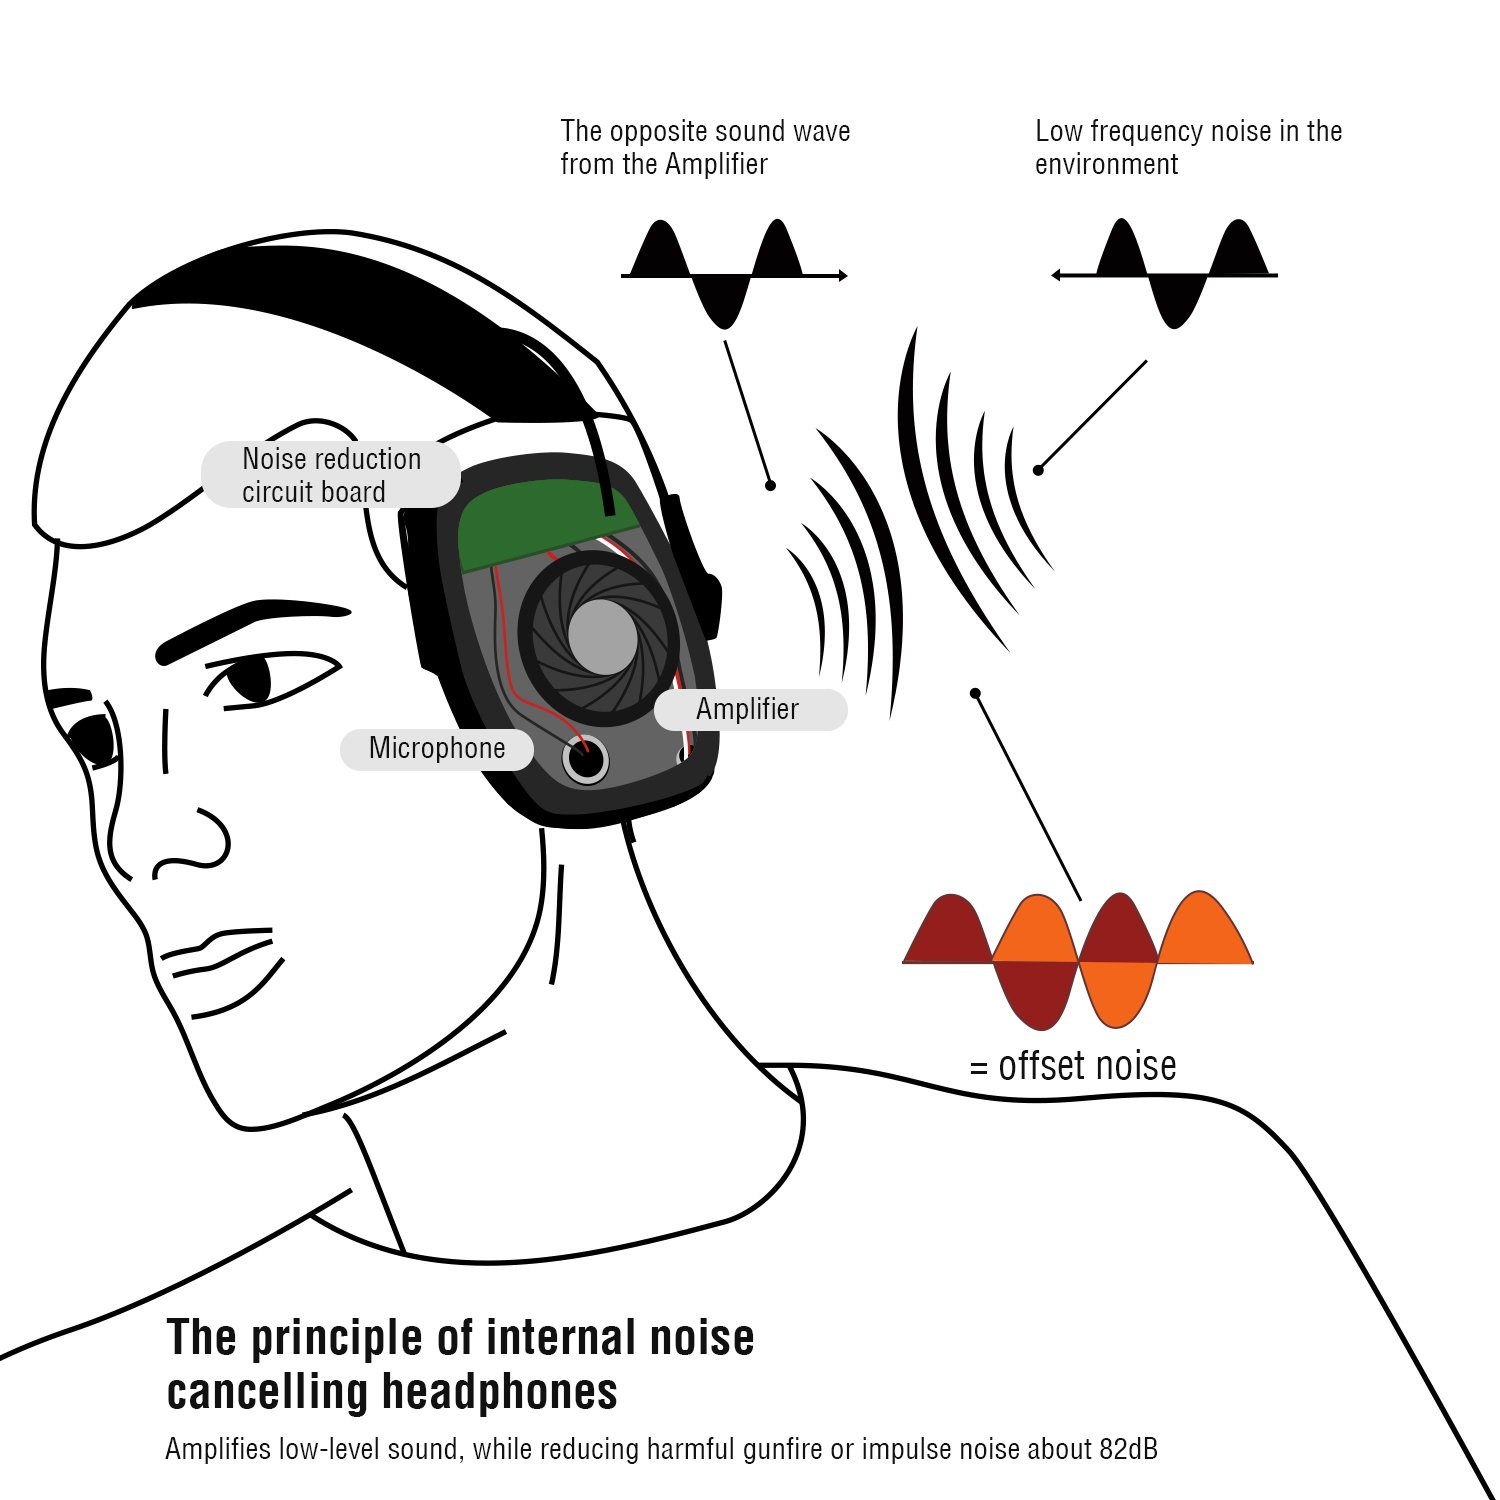 awesafe Electronic Shooting Earmuff, Noise Reduction Sound Amplification  Electronic Safety Ear Muffs and Storage Case